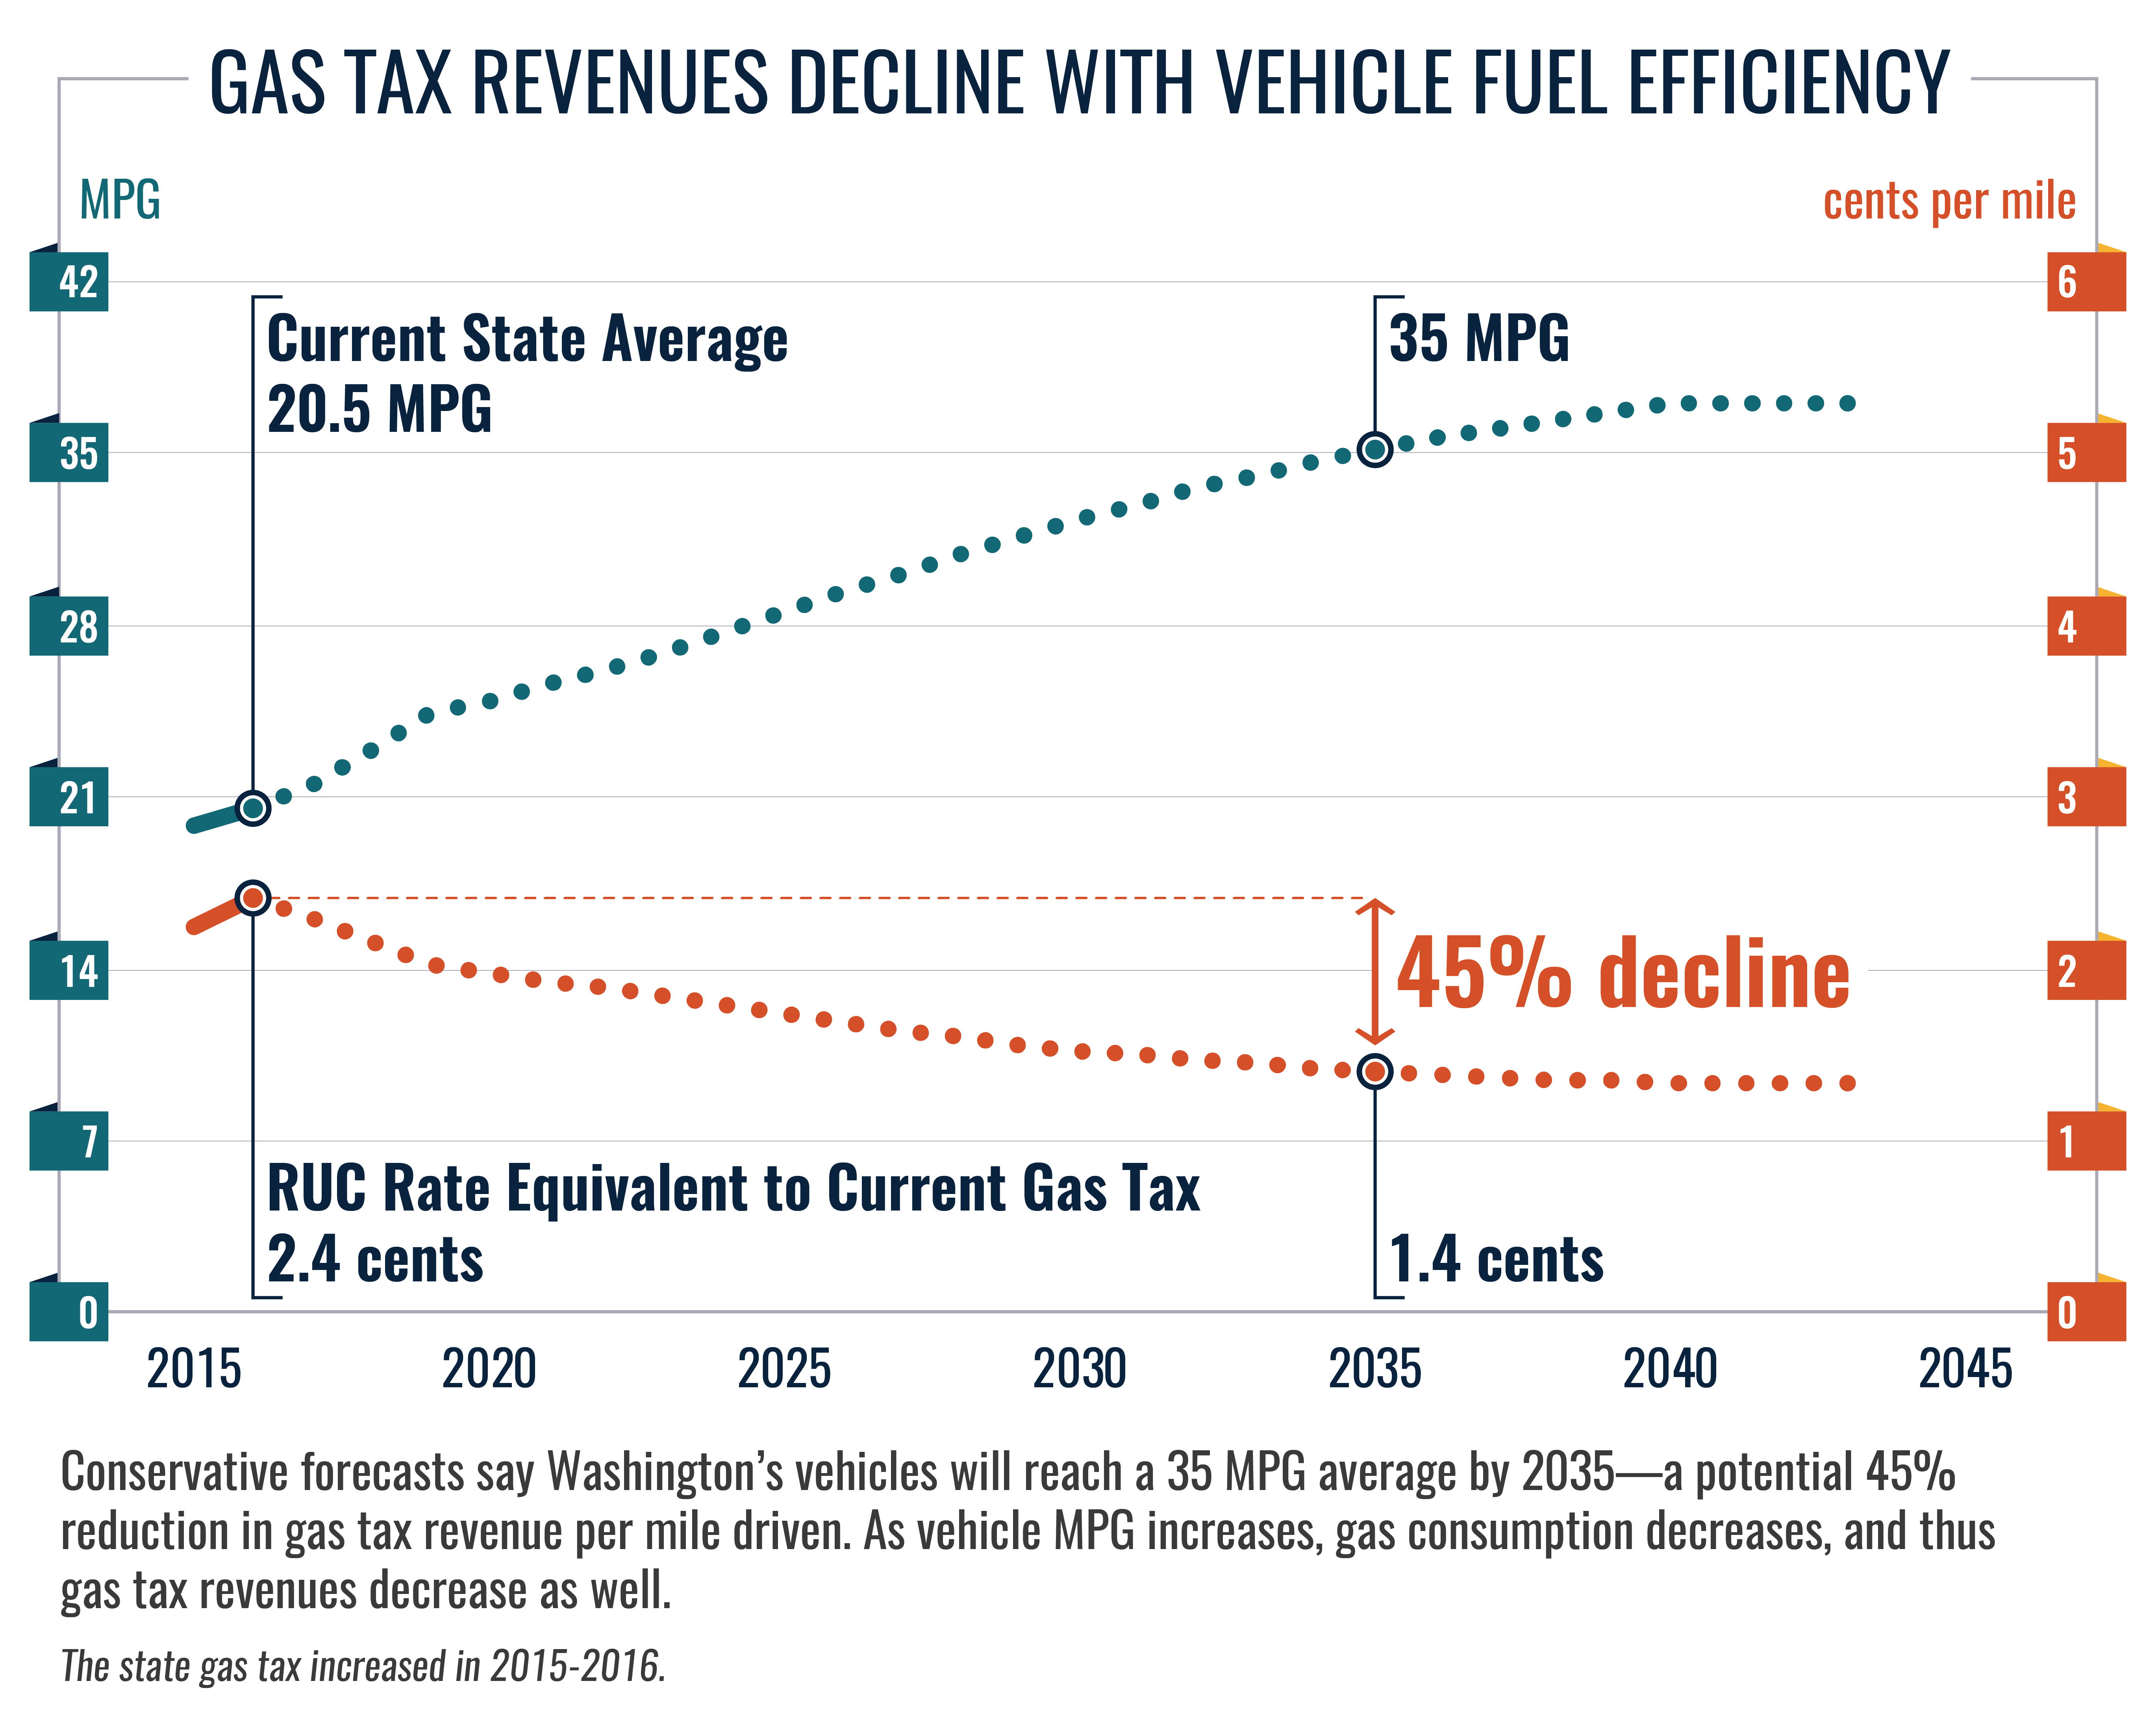 graph shows tax renues decline with vehicle fuel efficiency